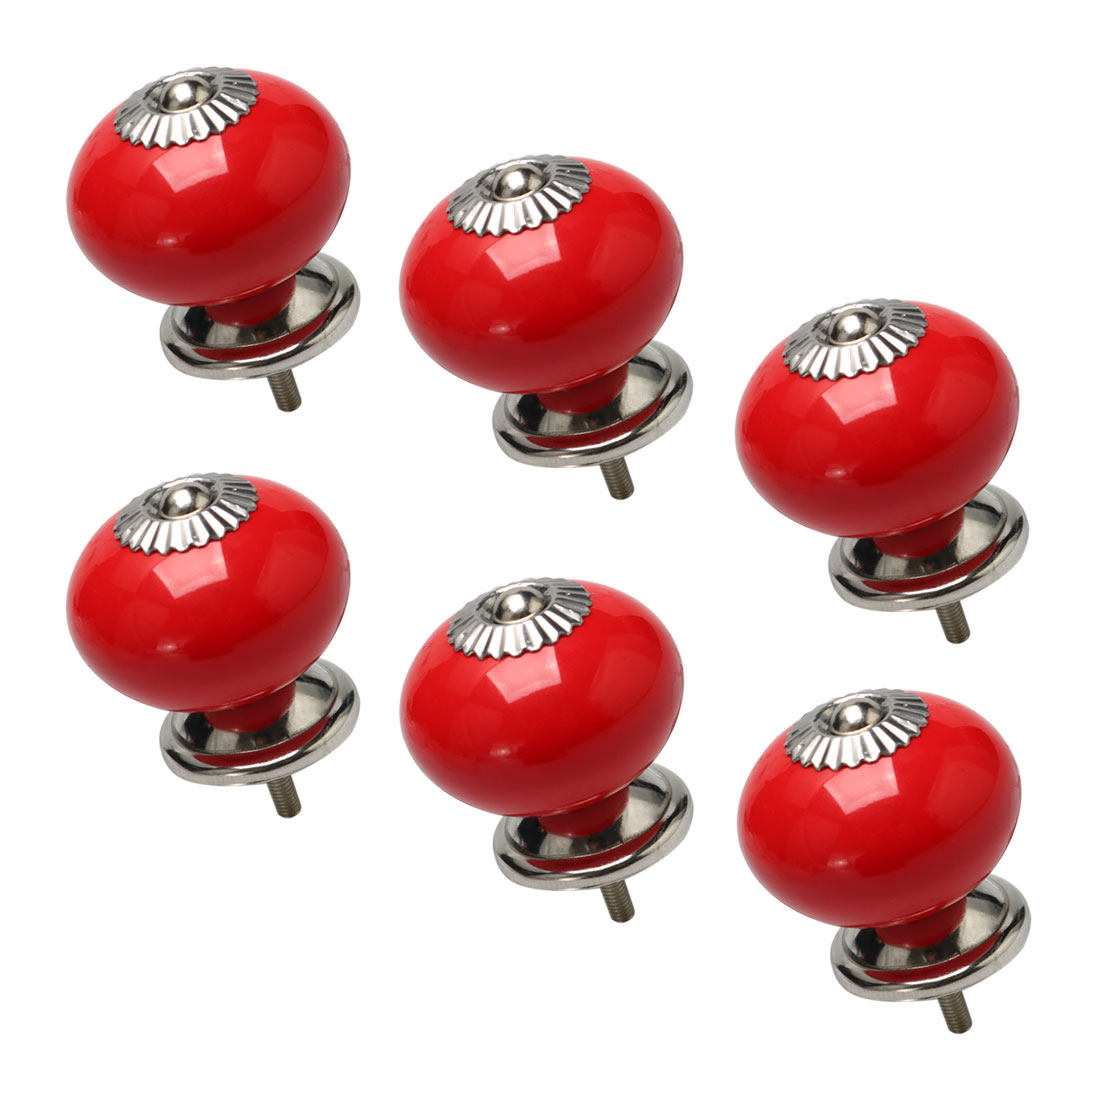 Ceramic Vintage Knob Drawer Round Shaped Pull Handle Wardrobe Dresser 6pcs Red - image 7 de 7